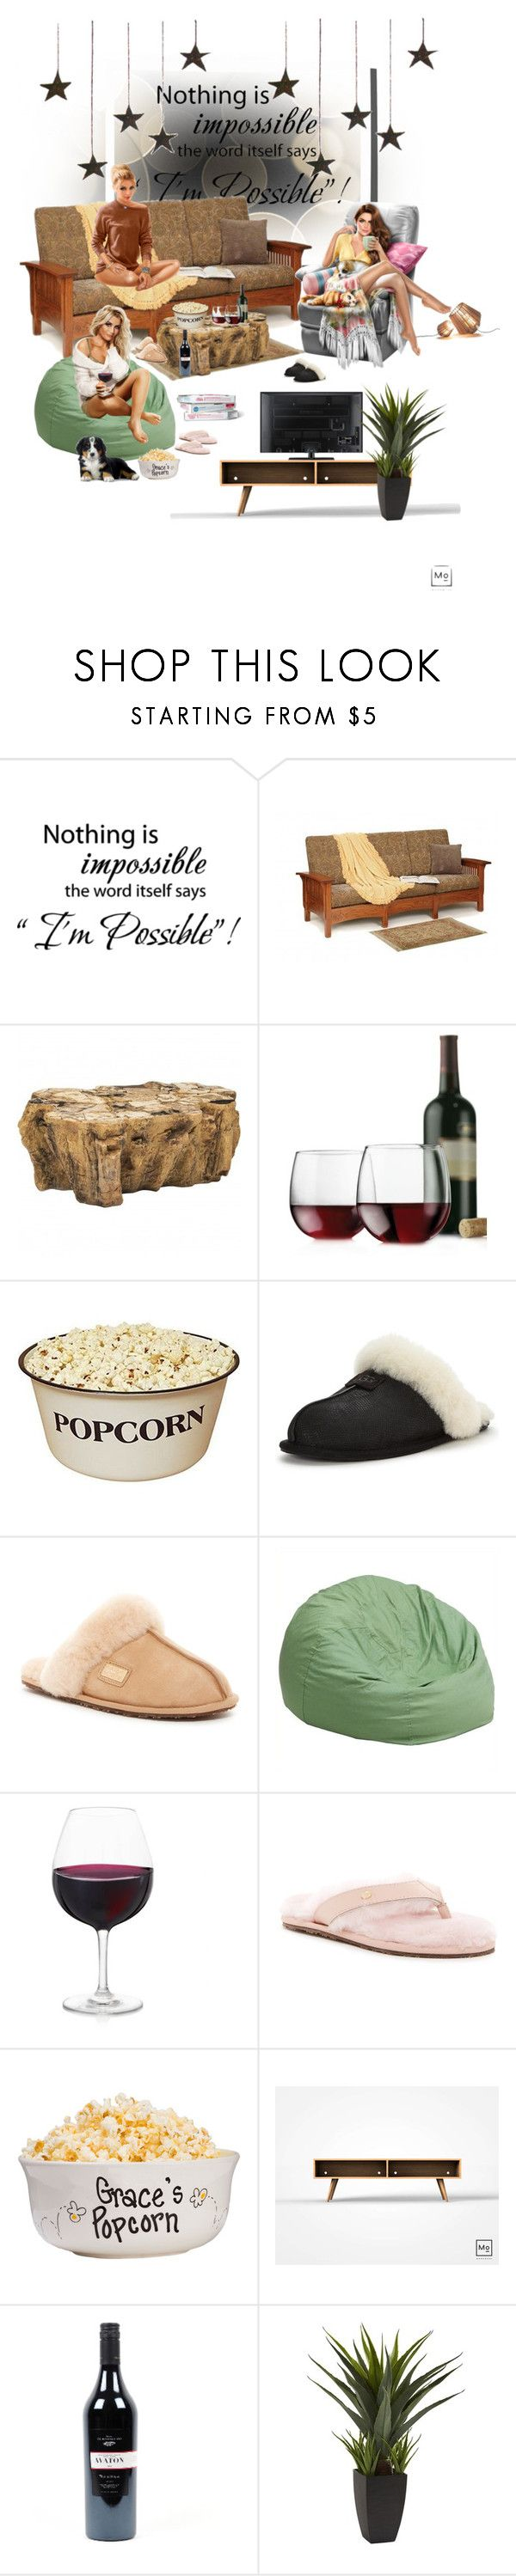 """It's a girl movie night kinda thing"" by vanessaperez0413 ❤ liked on Polyvore featuring WALL, DutchCrafters, Libbey, UGG, Australia Luxe Collective and Flash Furniture"